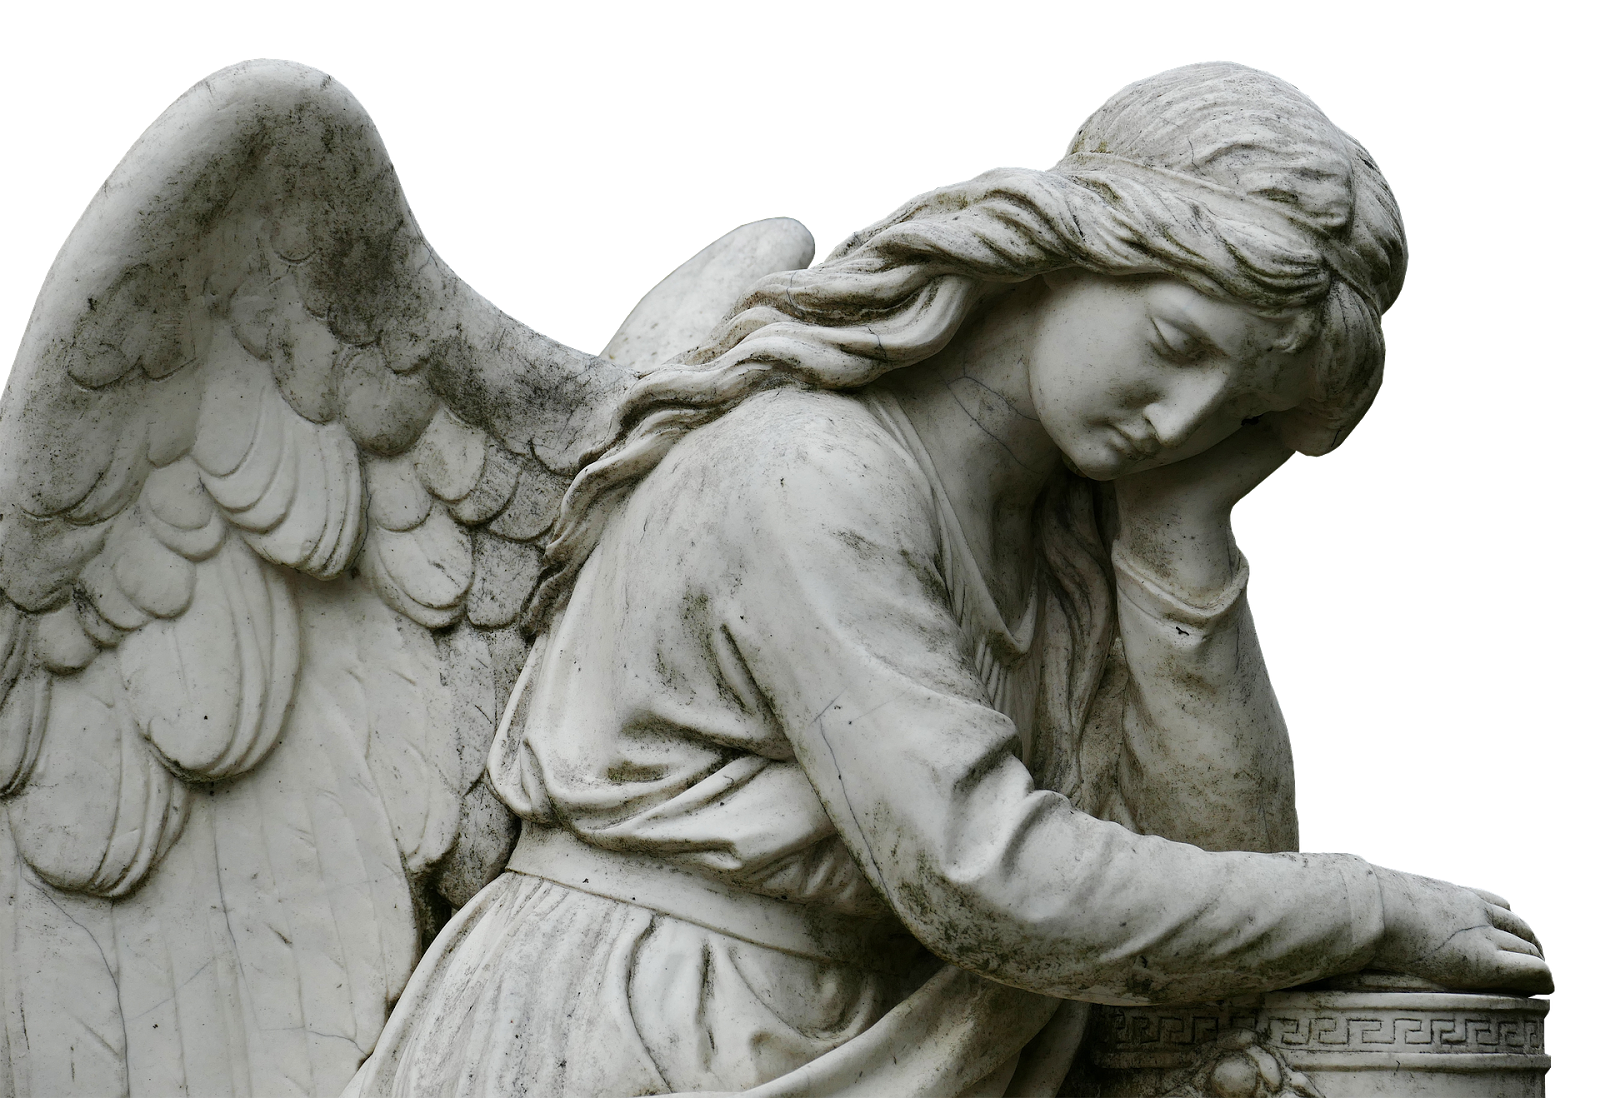 Mourning angel sculpture statue. Stone angels png image black and white stock